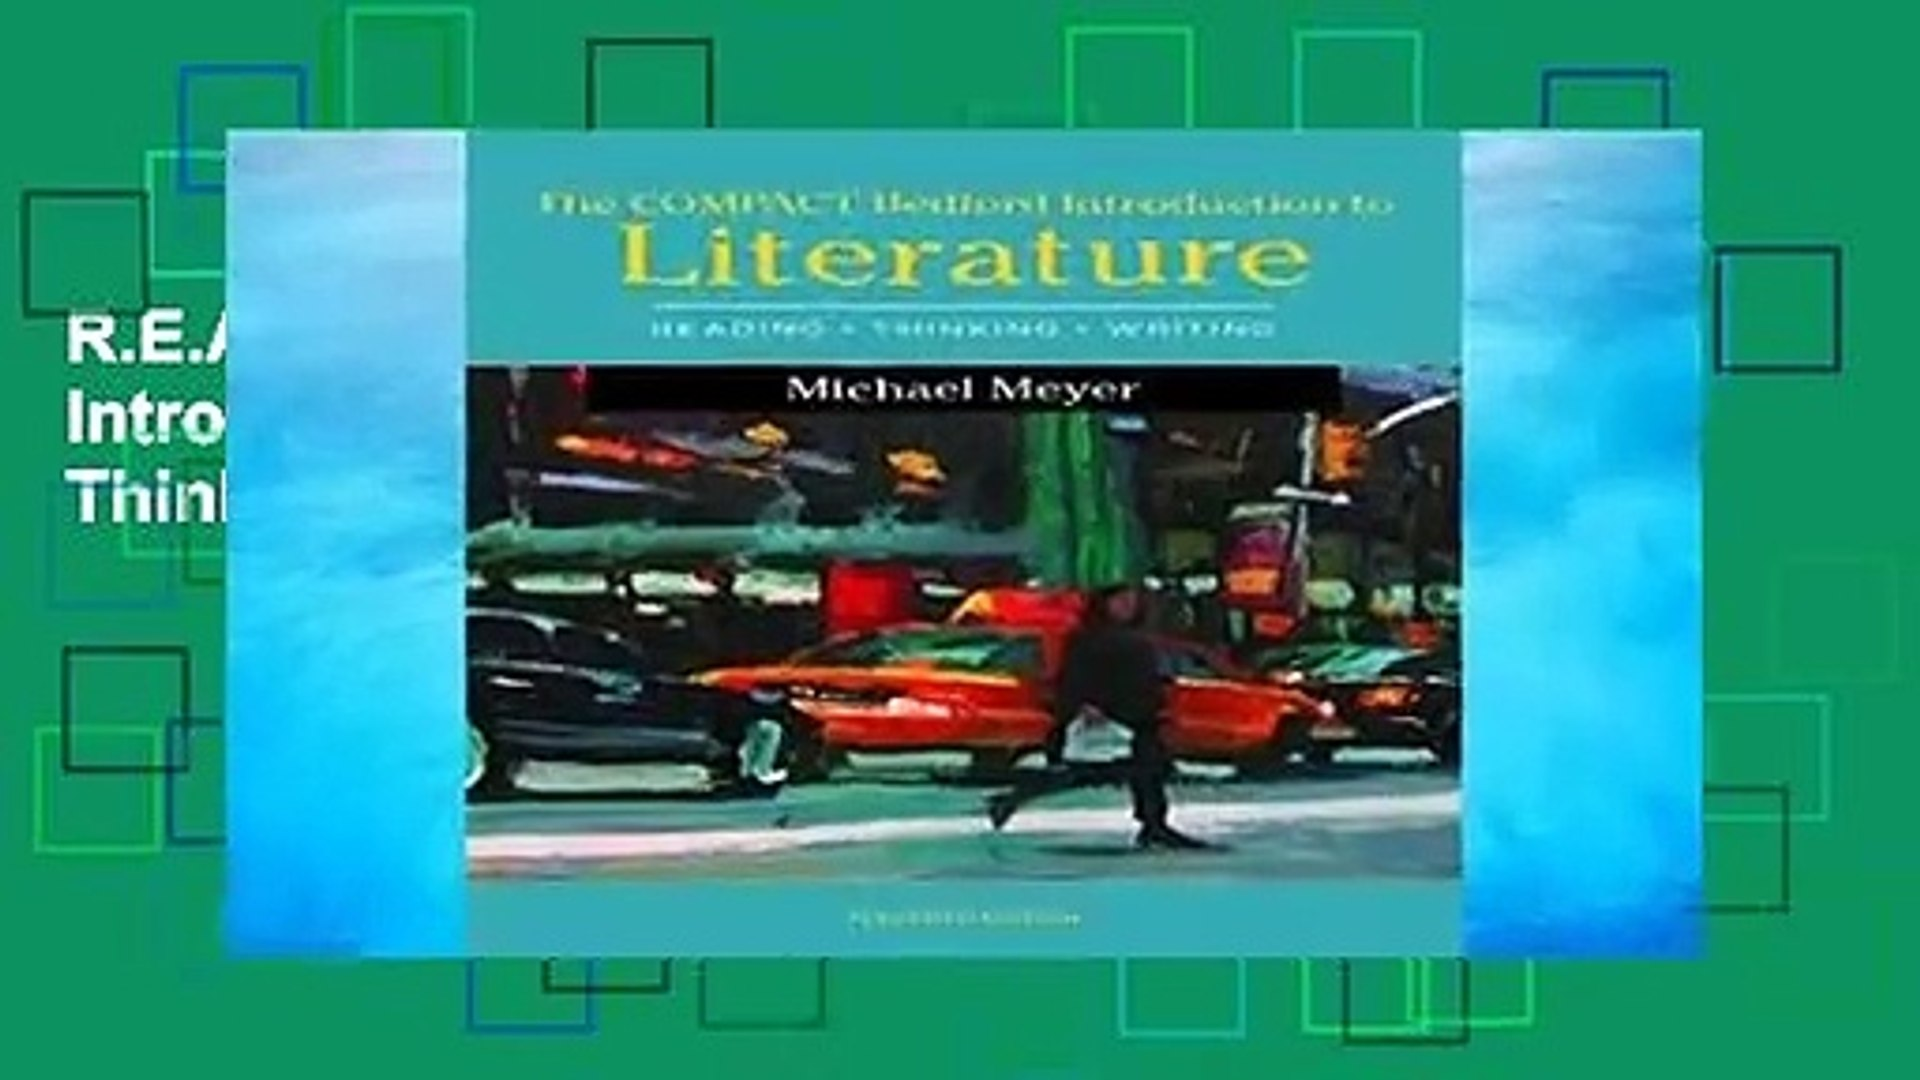 R.E.A.D The Compact Bedford Introduction to Literature: Reading, Thinking, and Writing